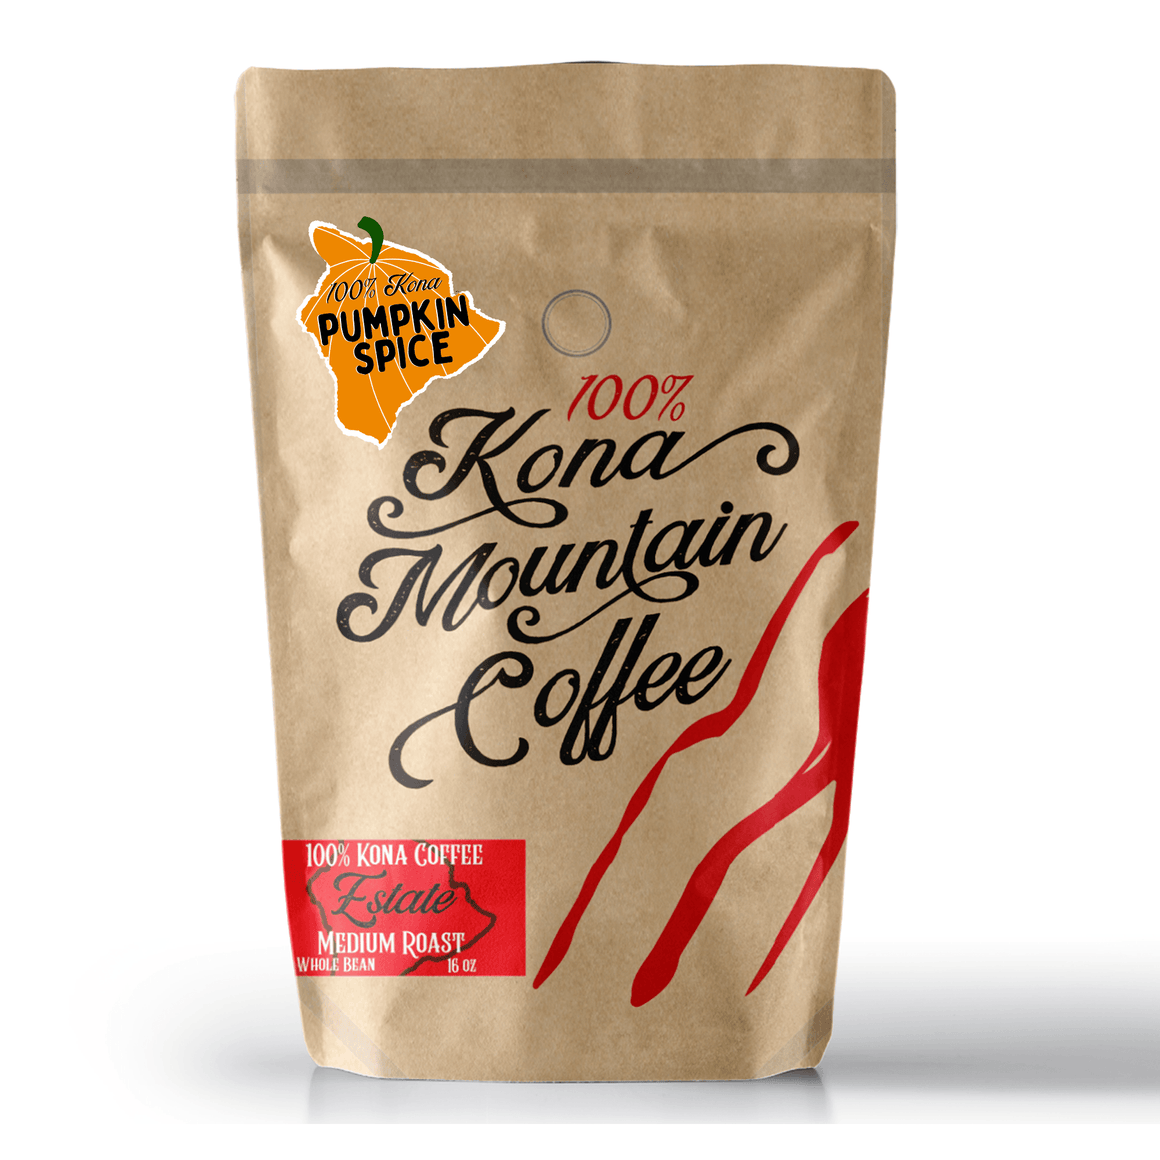 100% Kona Pumpkin Spice Coffee